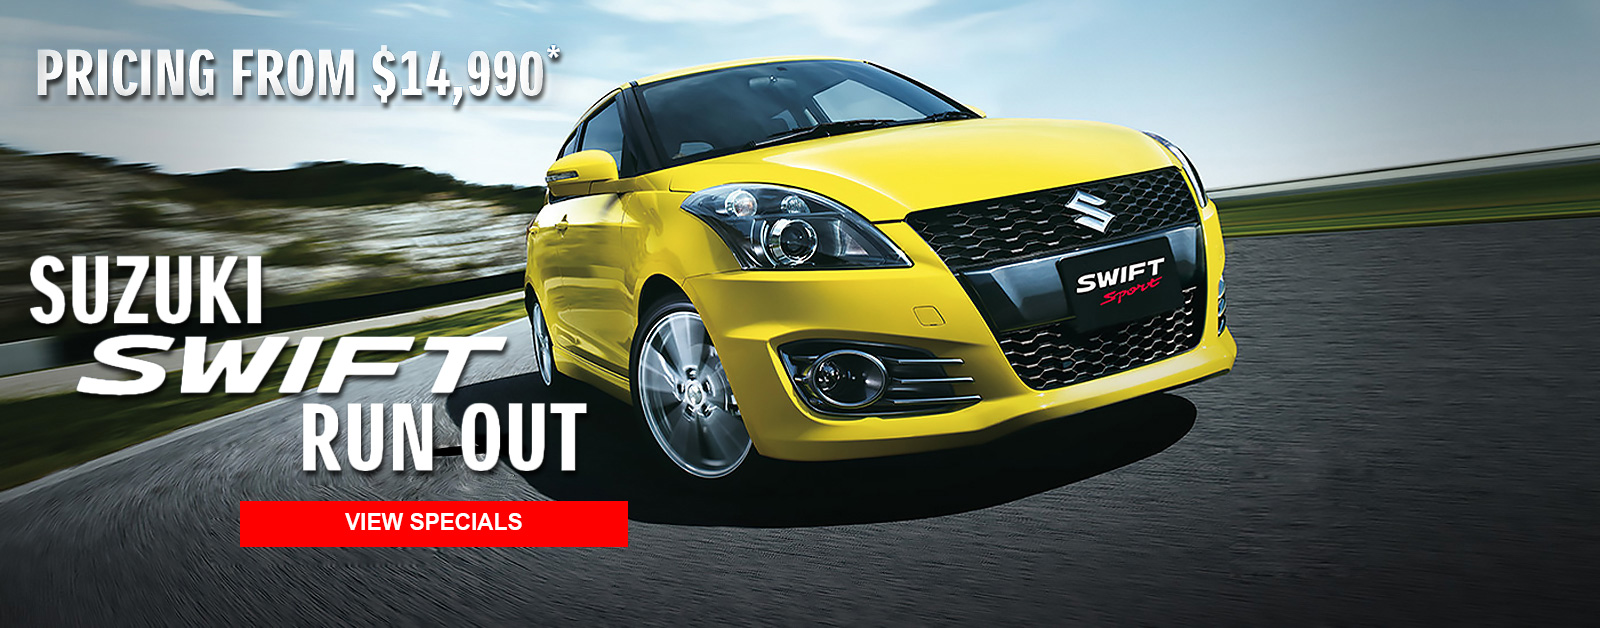 Suzuki Swift run-out, pricing from $14,990. See Redcliffe Suzuki for more details.